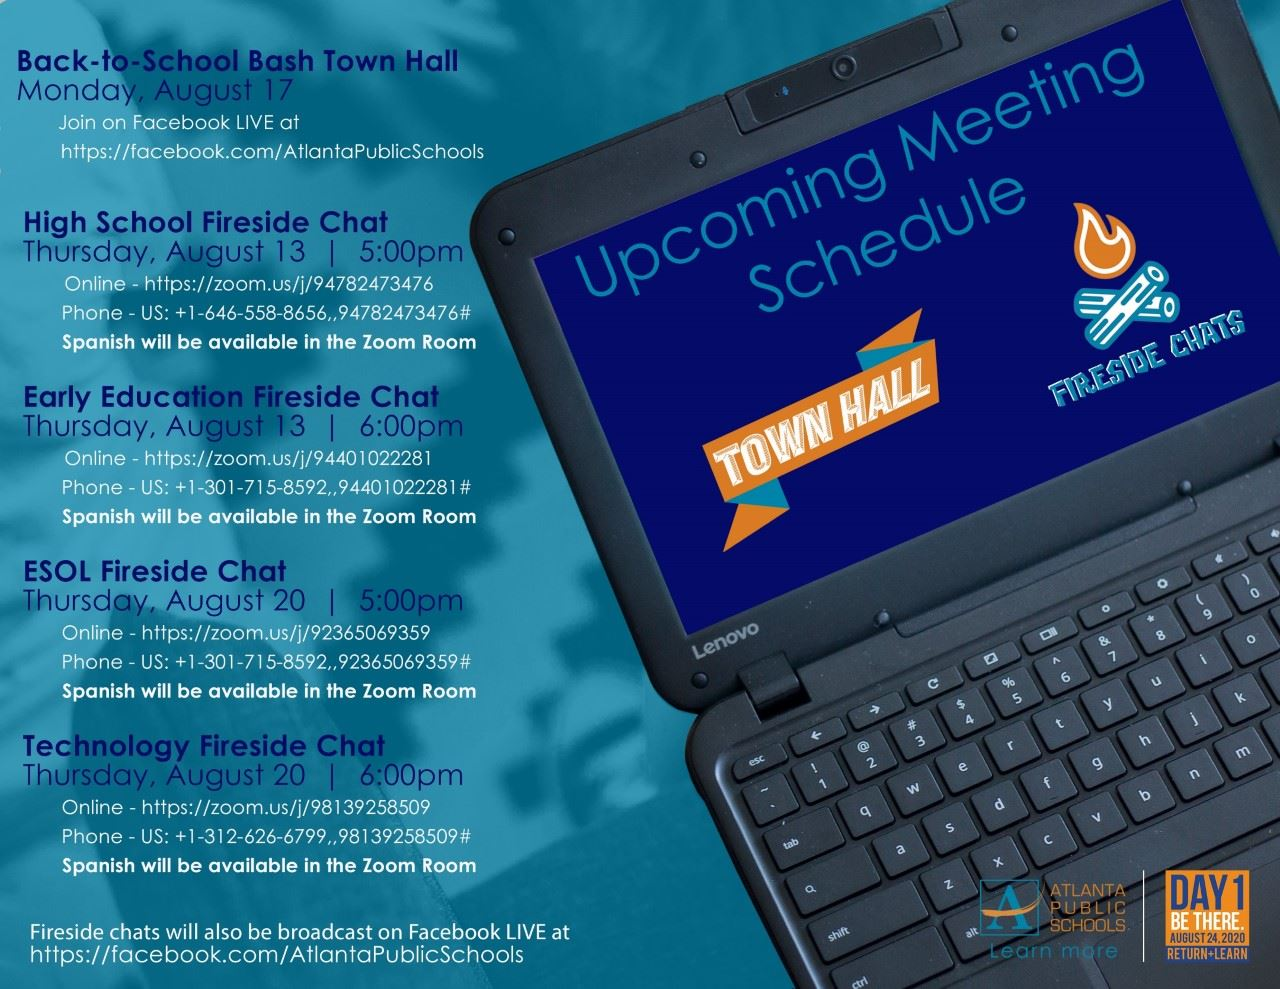 Upcoming Town Hall Meetings and Fireside Chats